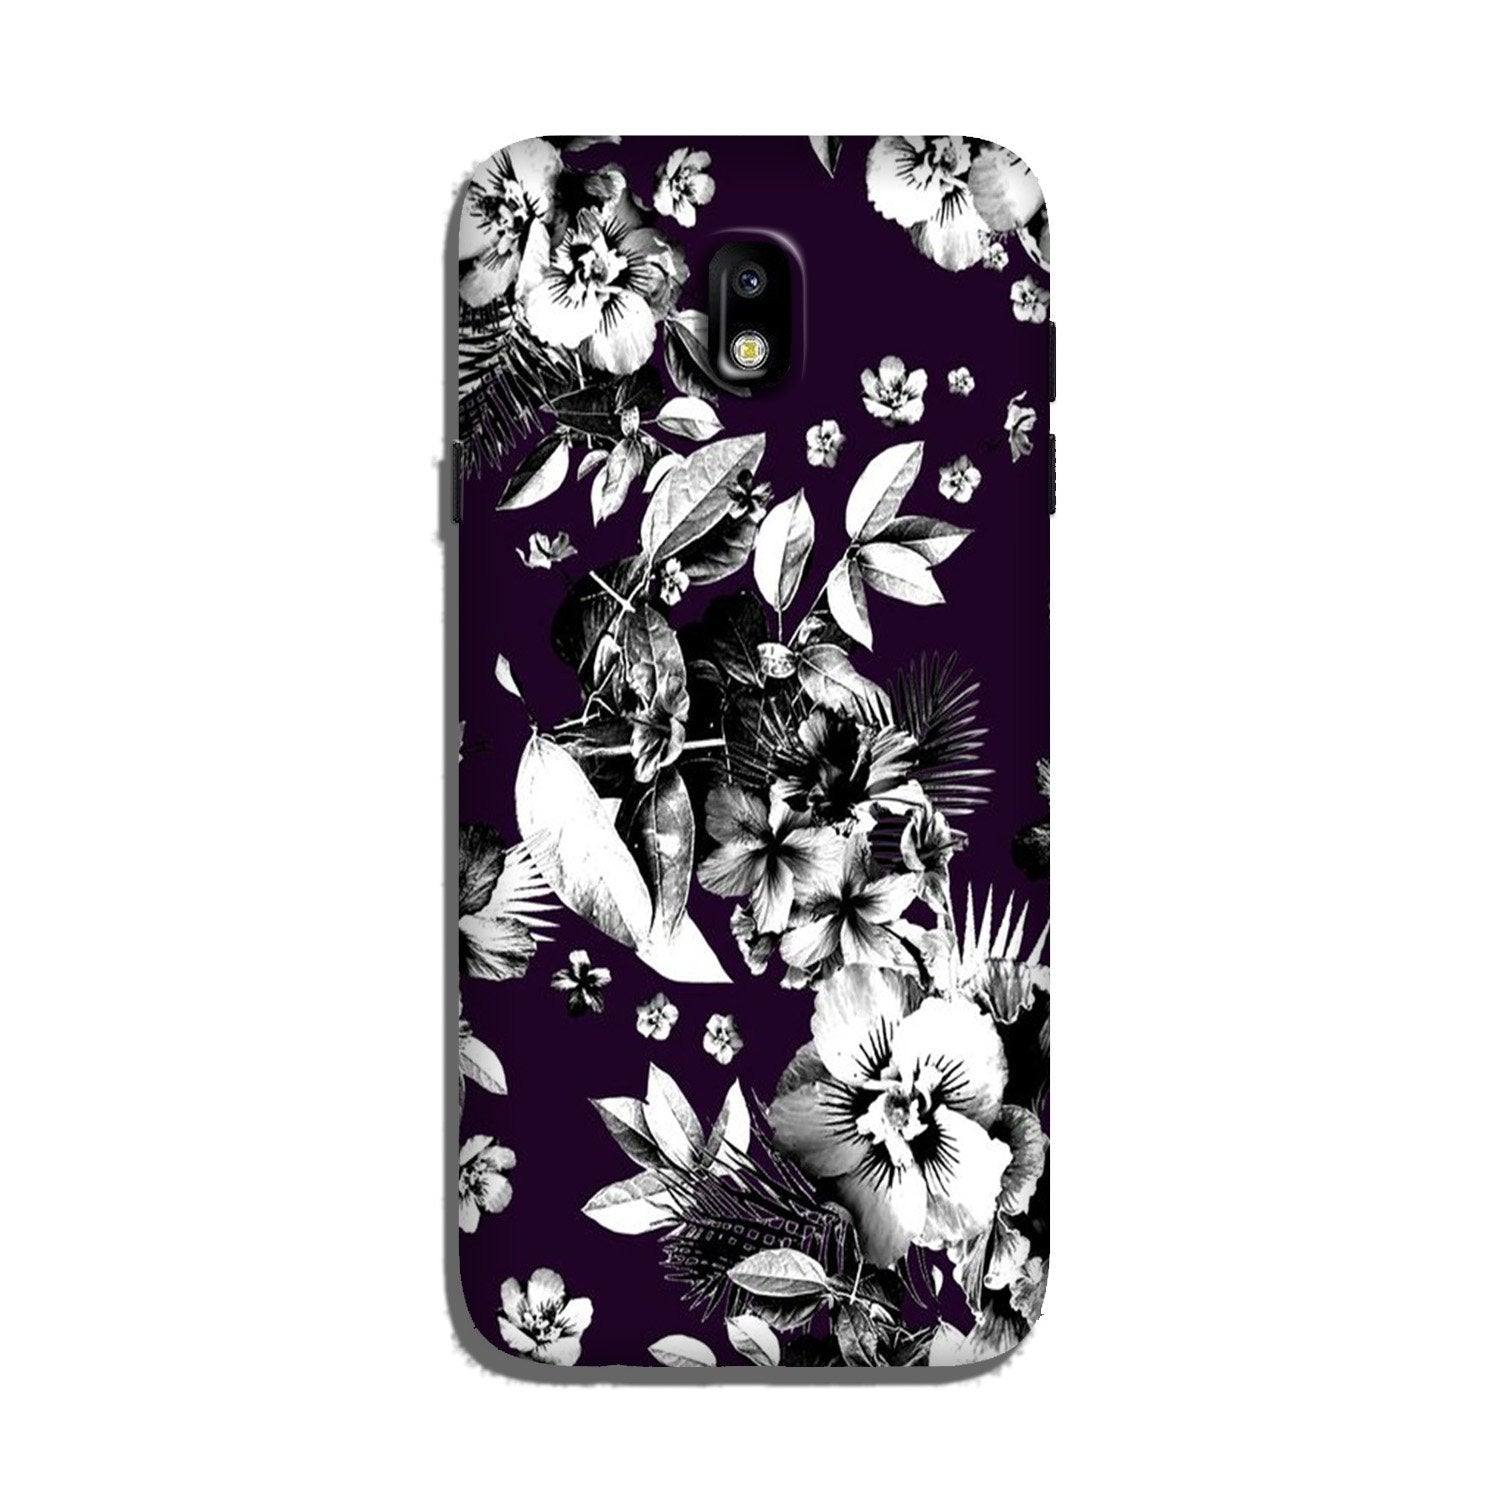 white flowers Case for Galaxy J5 Pro